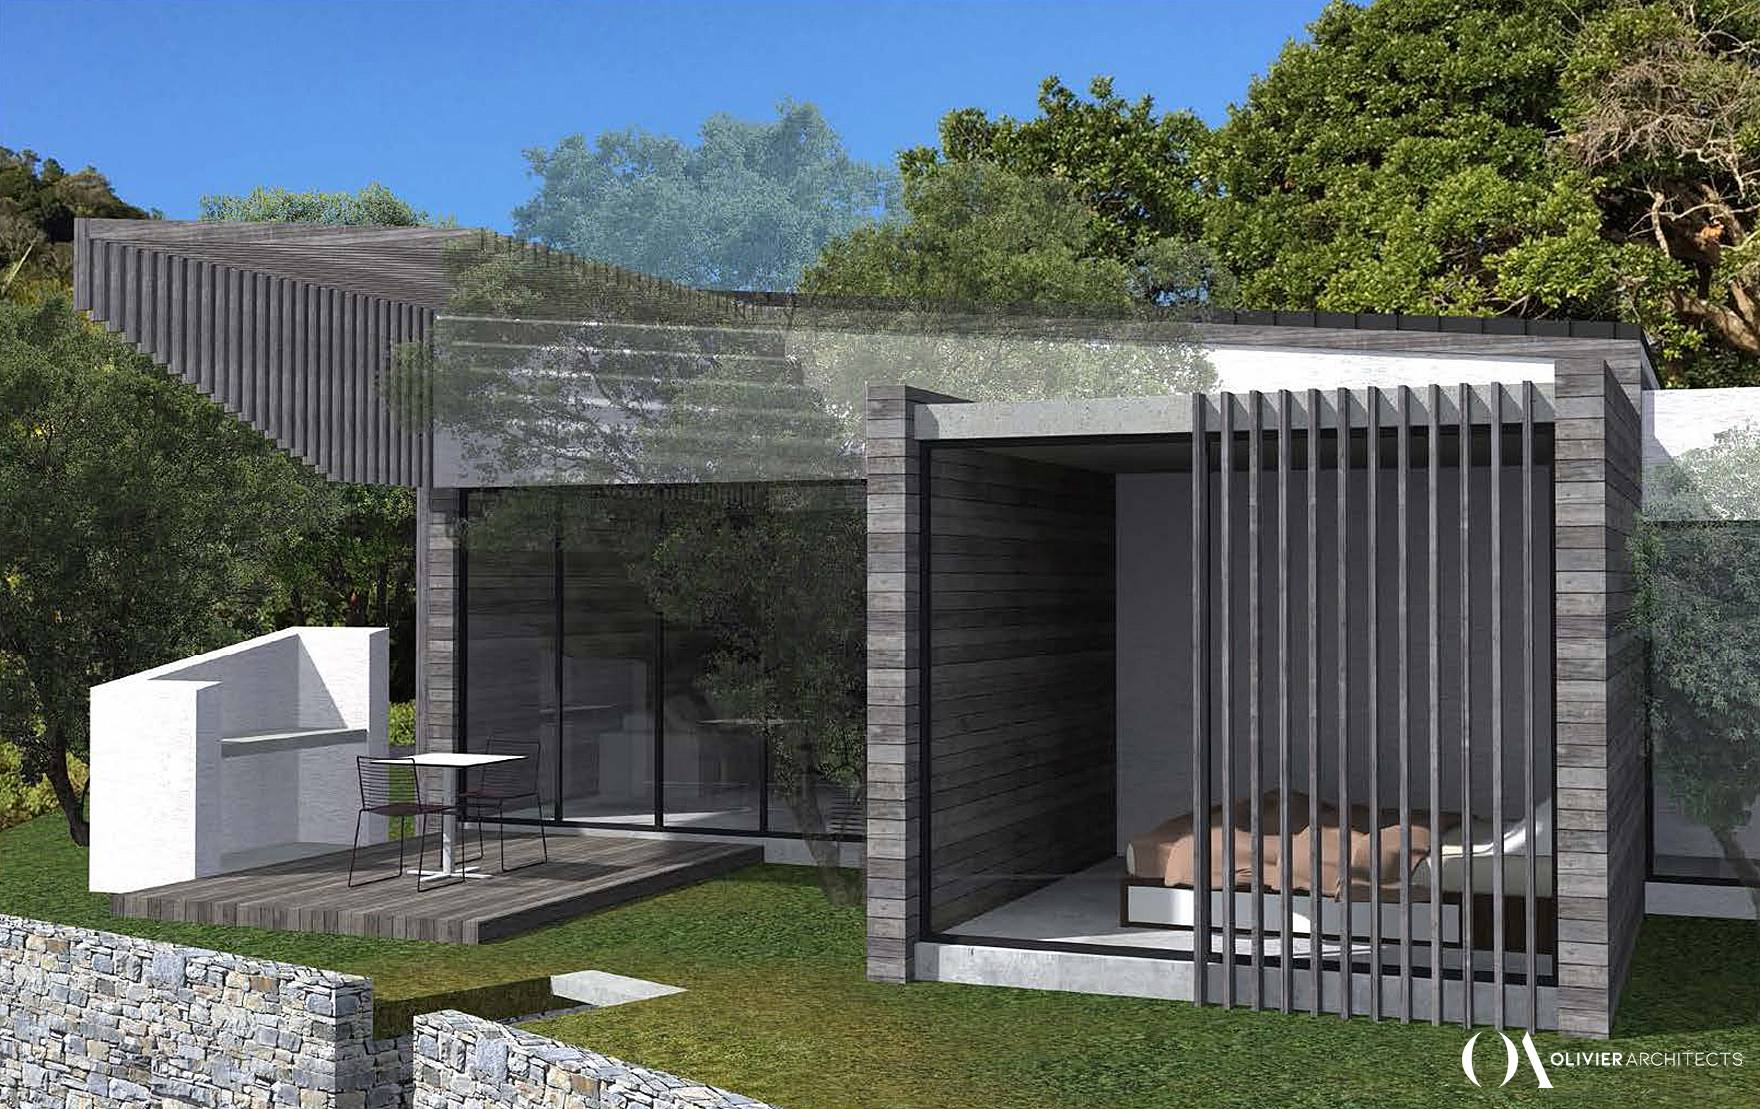 Olivier Architects, Contemporary Lagoon Side Lifestyle Villa - Holiday Villa - Beach House - South Africa